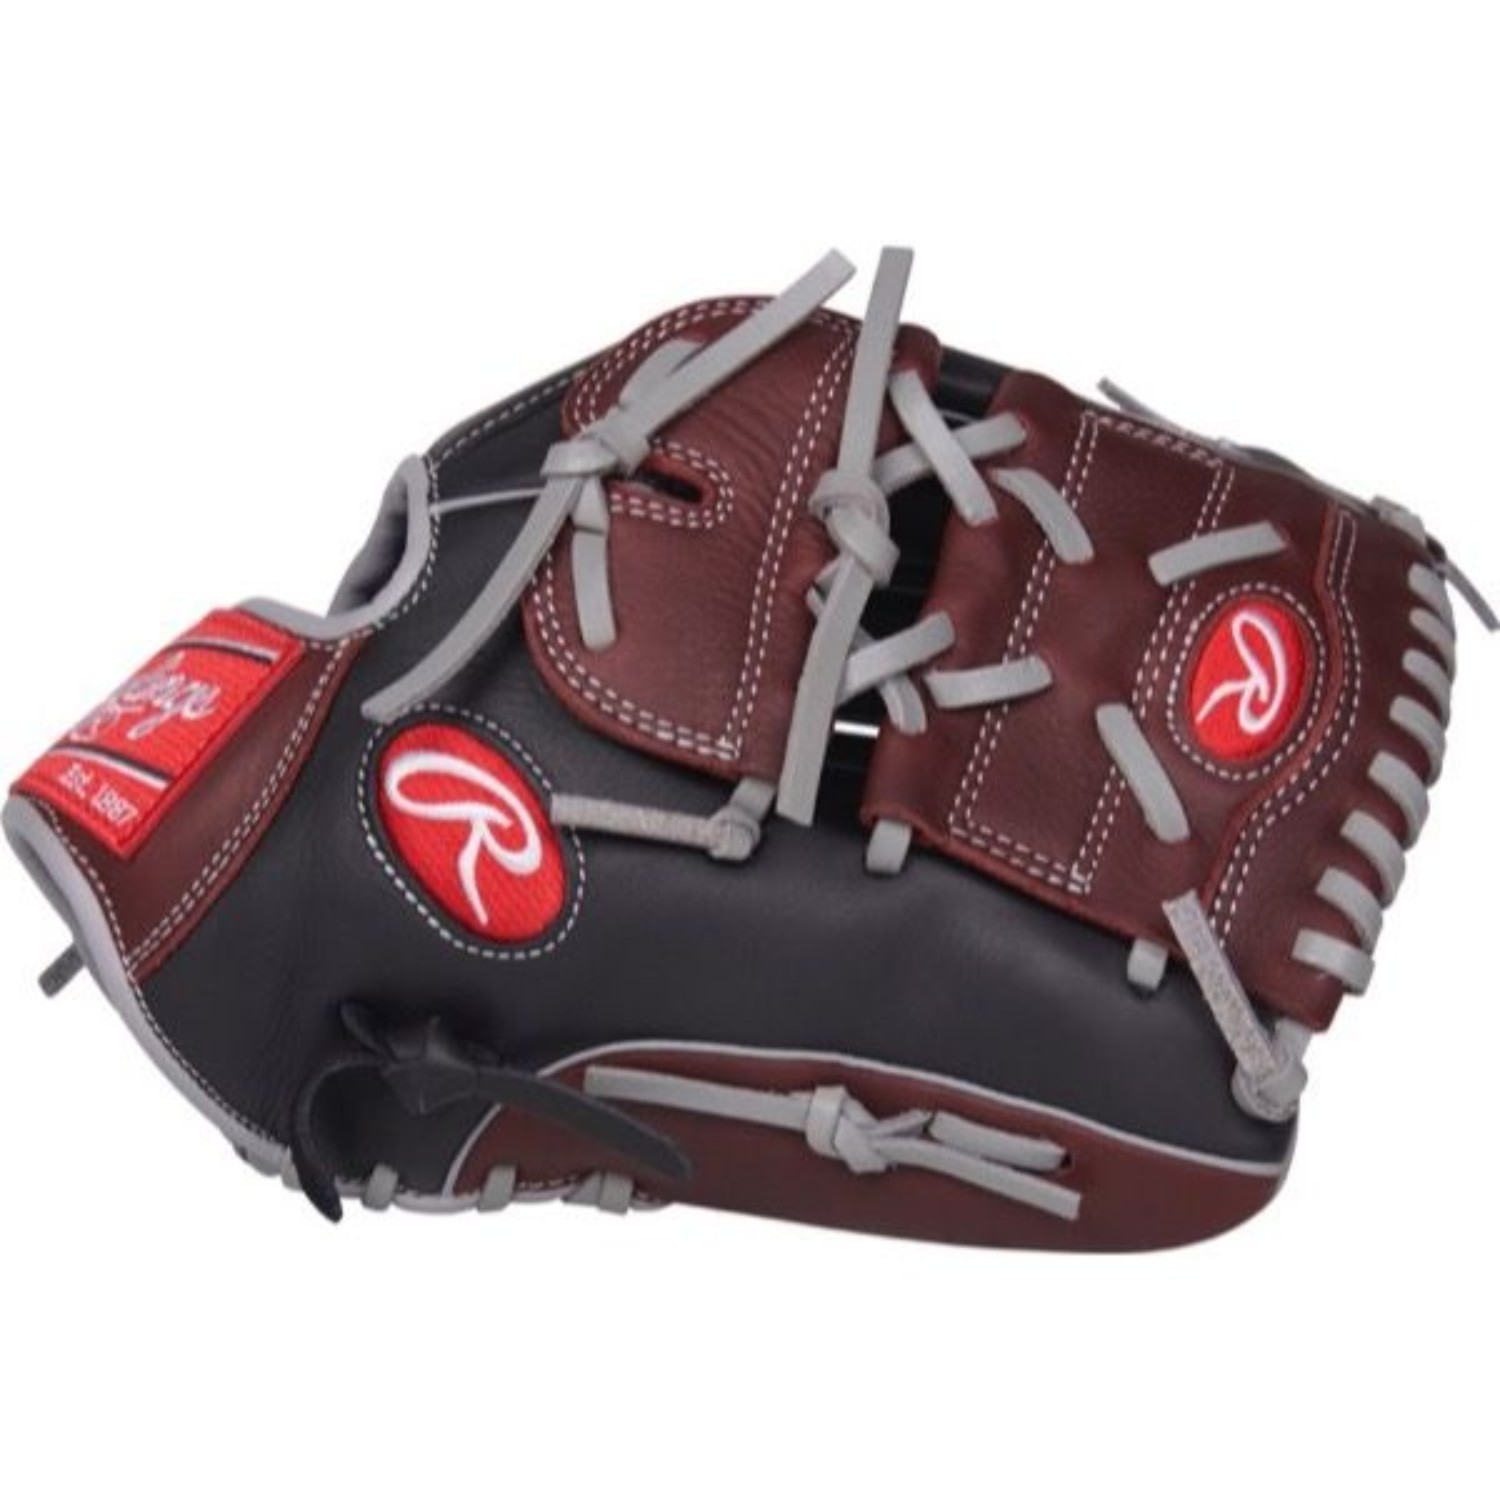 "Rawlings 12"" R9 Series Baseball Glove, Left Hand Throw"